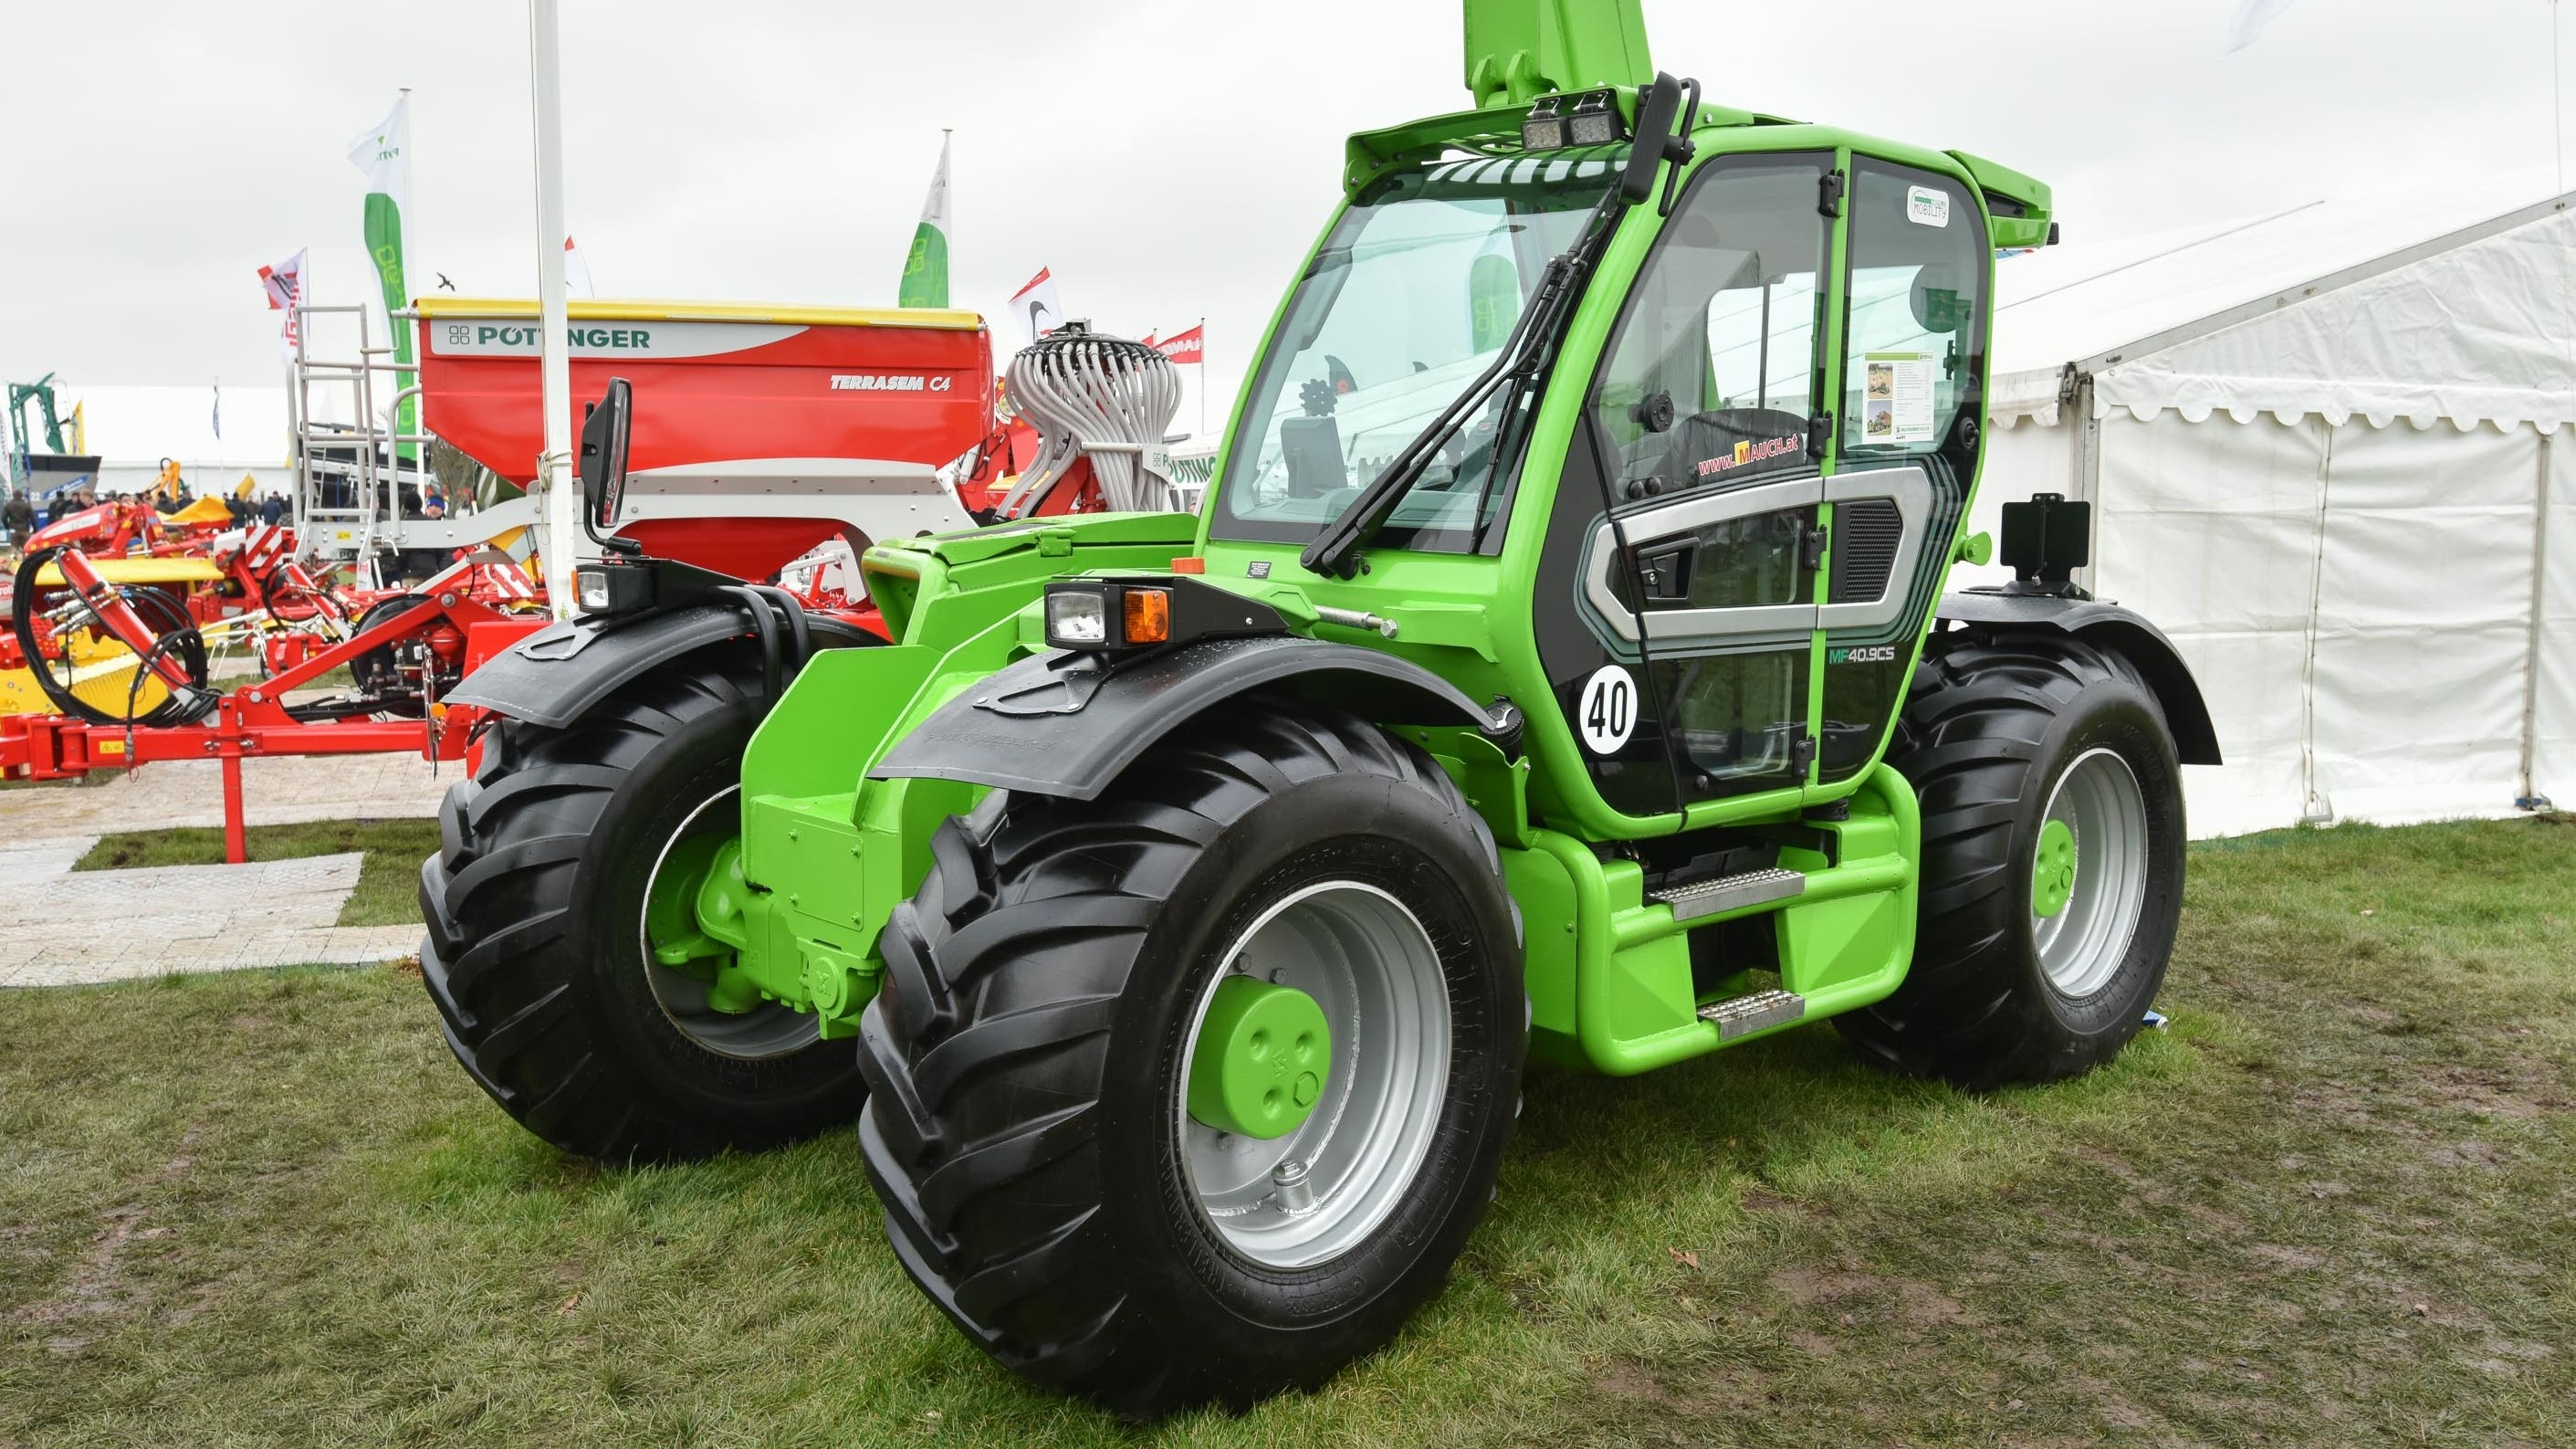 Merlo P50.8CS telescopic handler